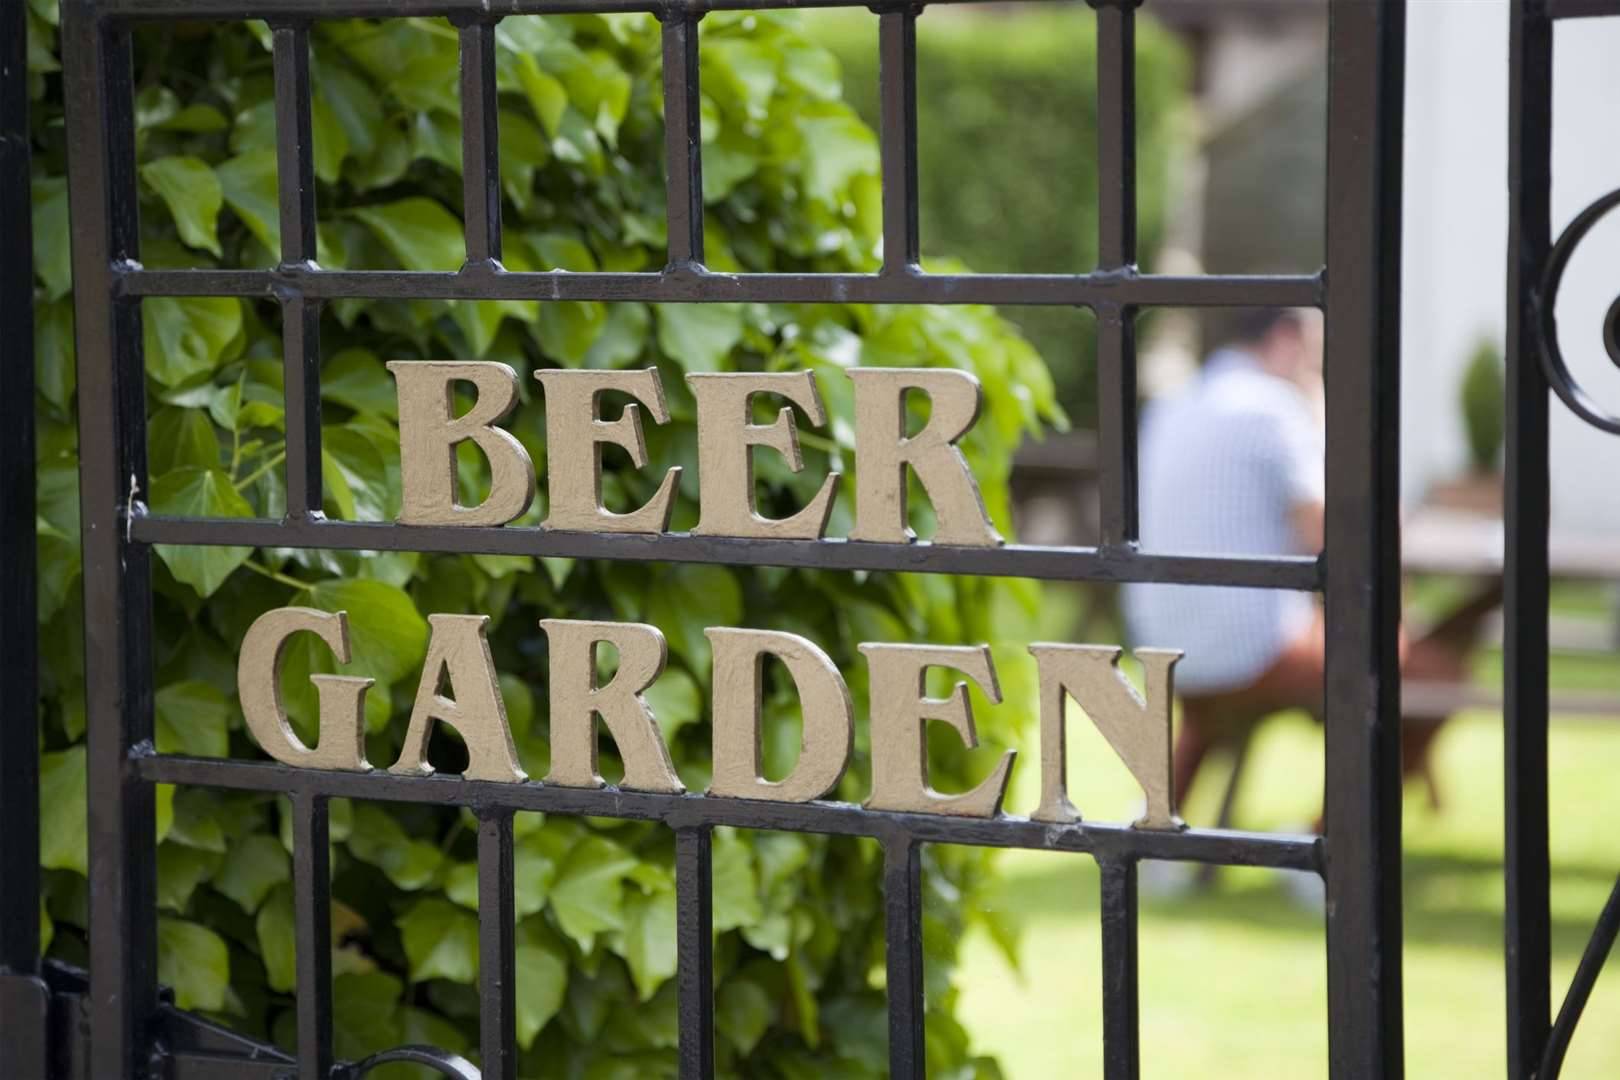 The safest way to socialise these days is outdoors in the fresh air, which makes the beer garden a godsend for the months ahead